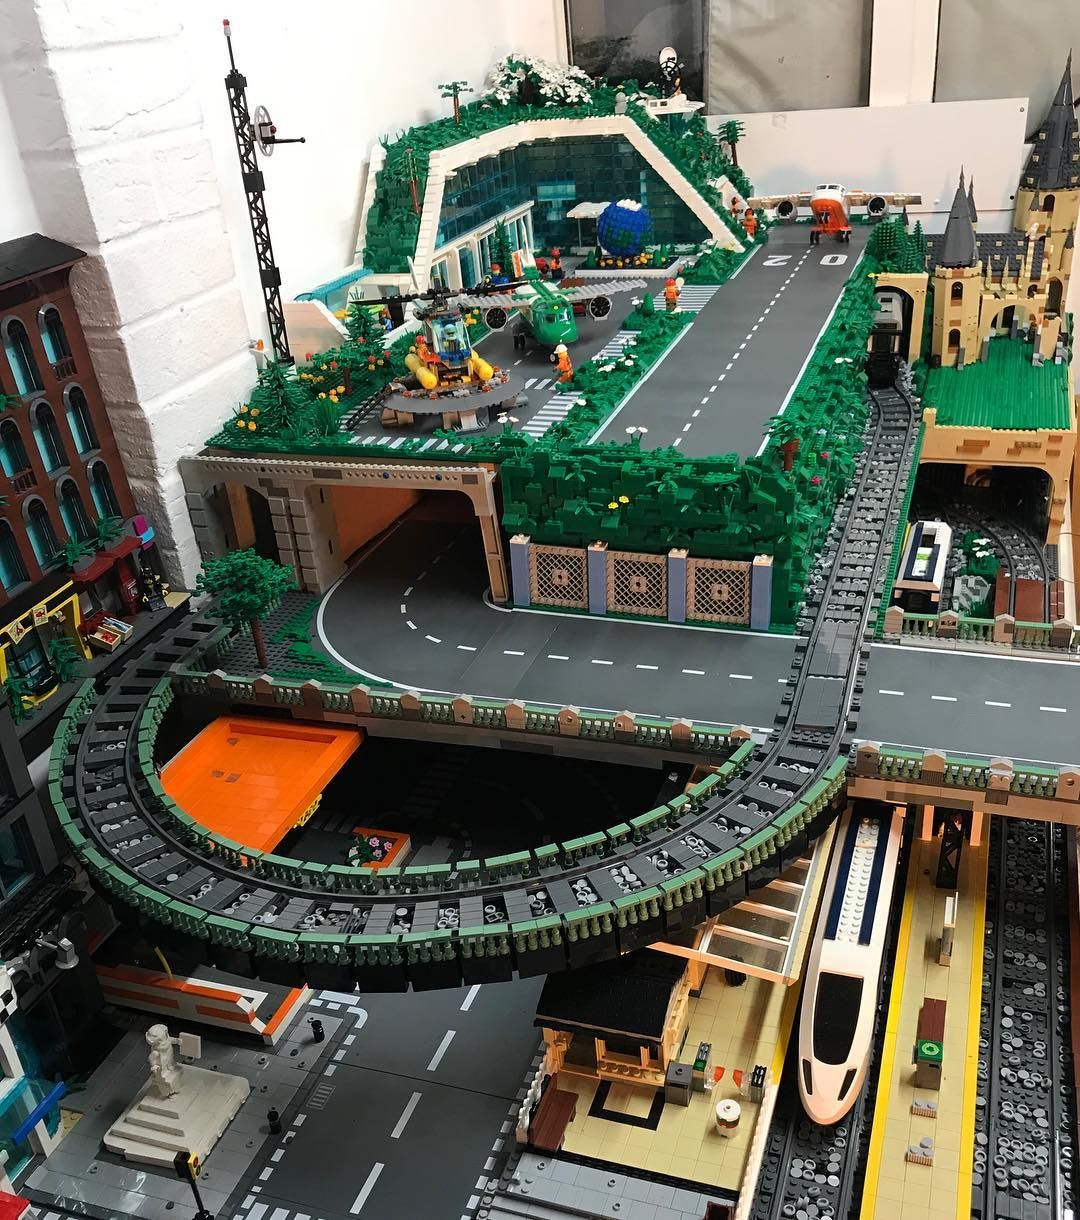 Lauchibo On Instagram First Of The Railings Done To Finish Off The Elevated Curve Lego Legocity Legocitymoc Legotrain Le Lego Bauen Lego City Lego Stadt